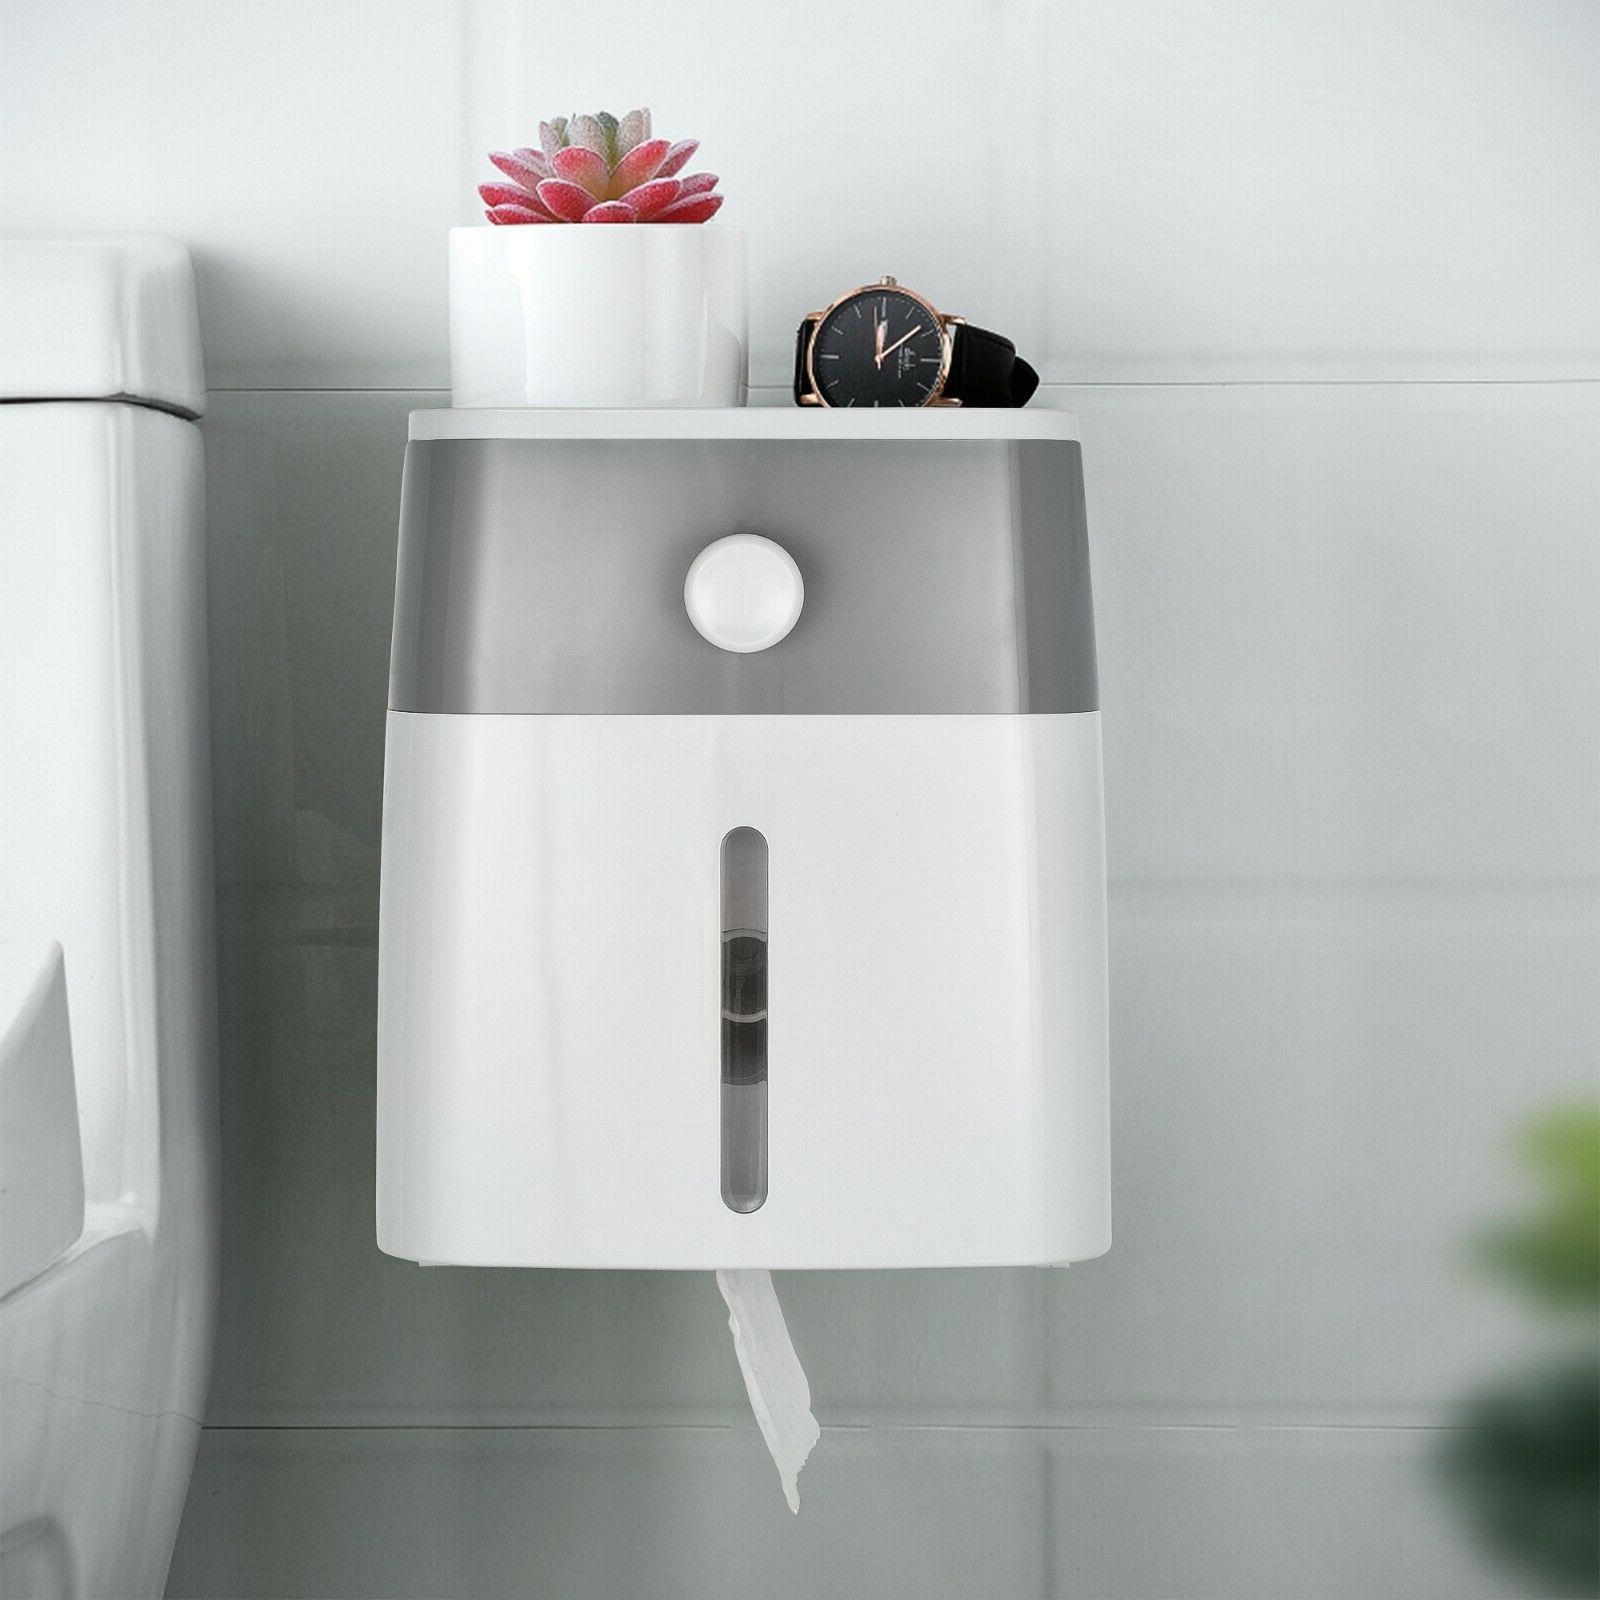 Toilet Paper Roll Holder Adhesive Wall Mount Facial Tissue S